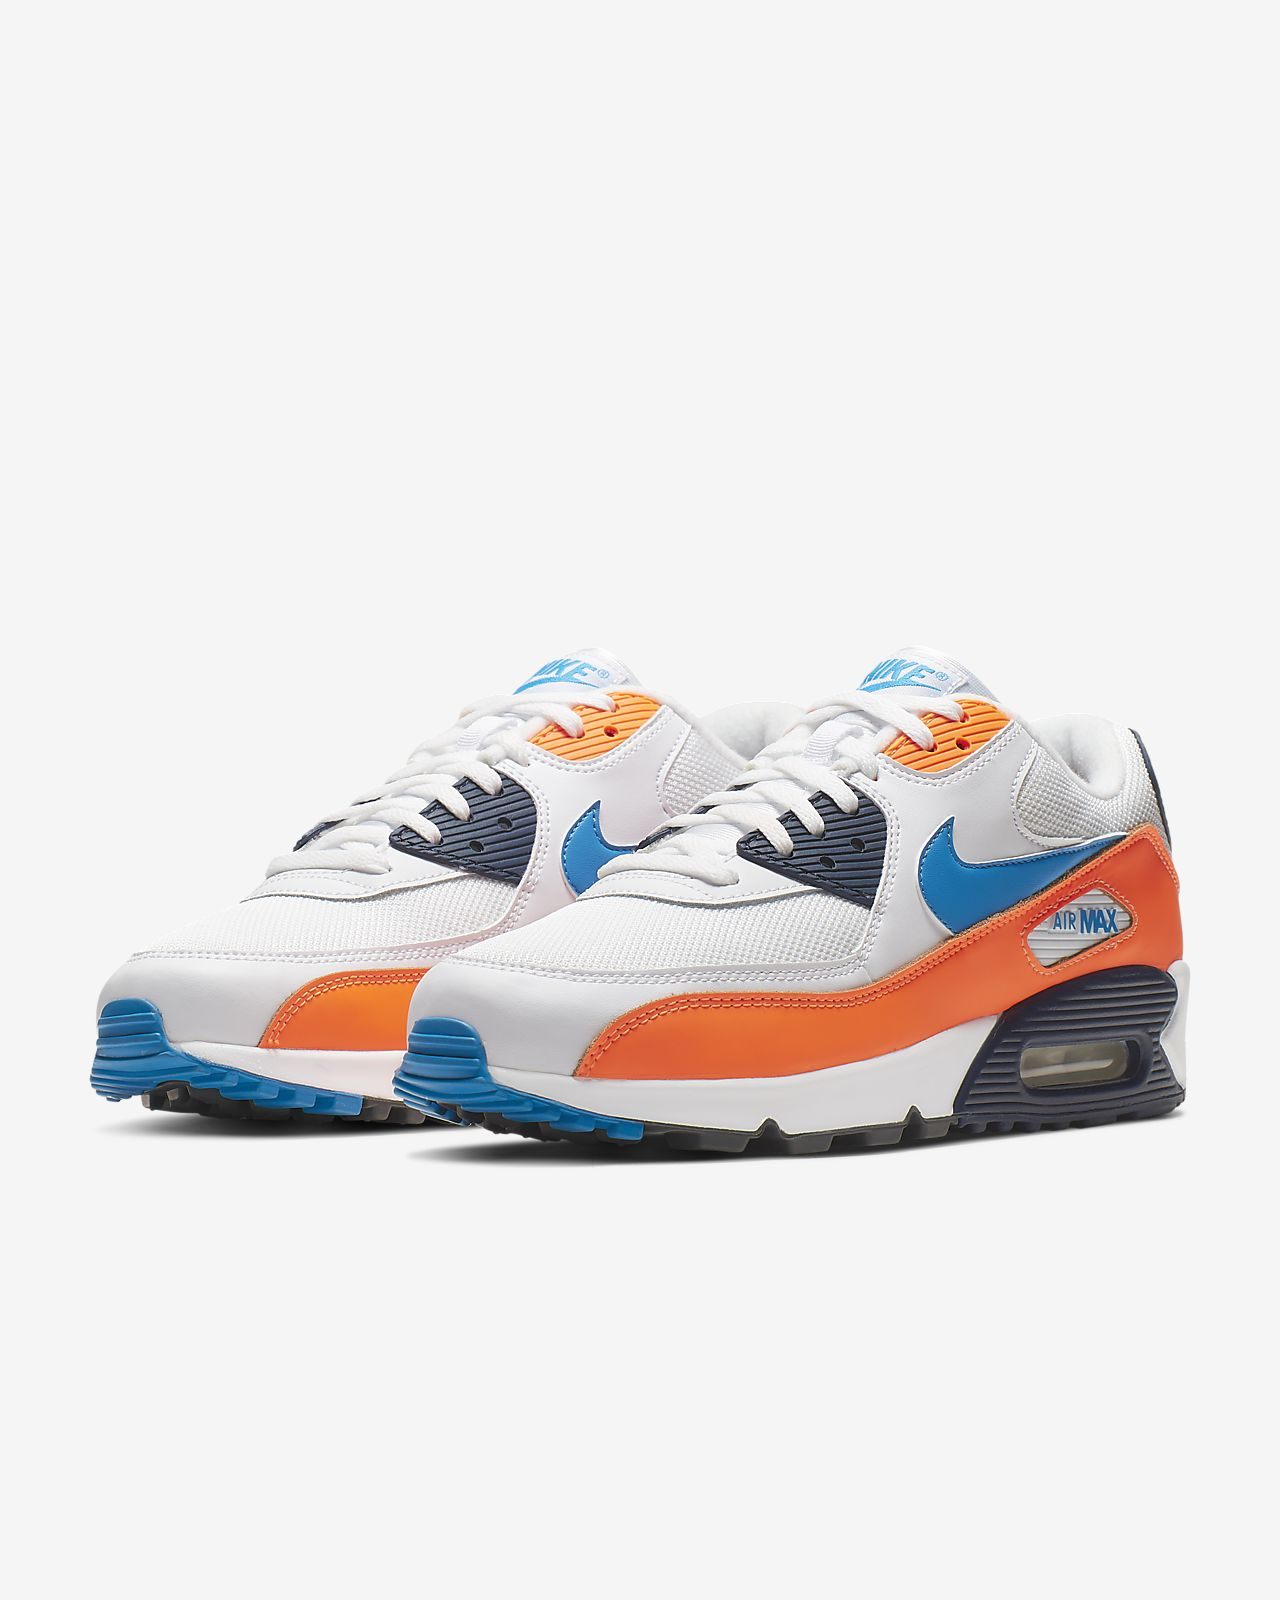 Nike Air Max 90 W shoes grey yellow blue